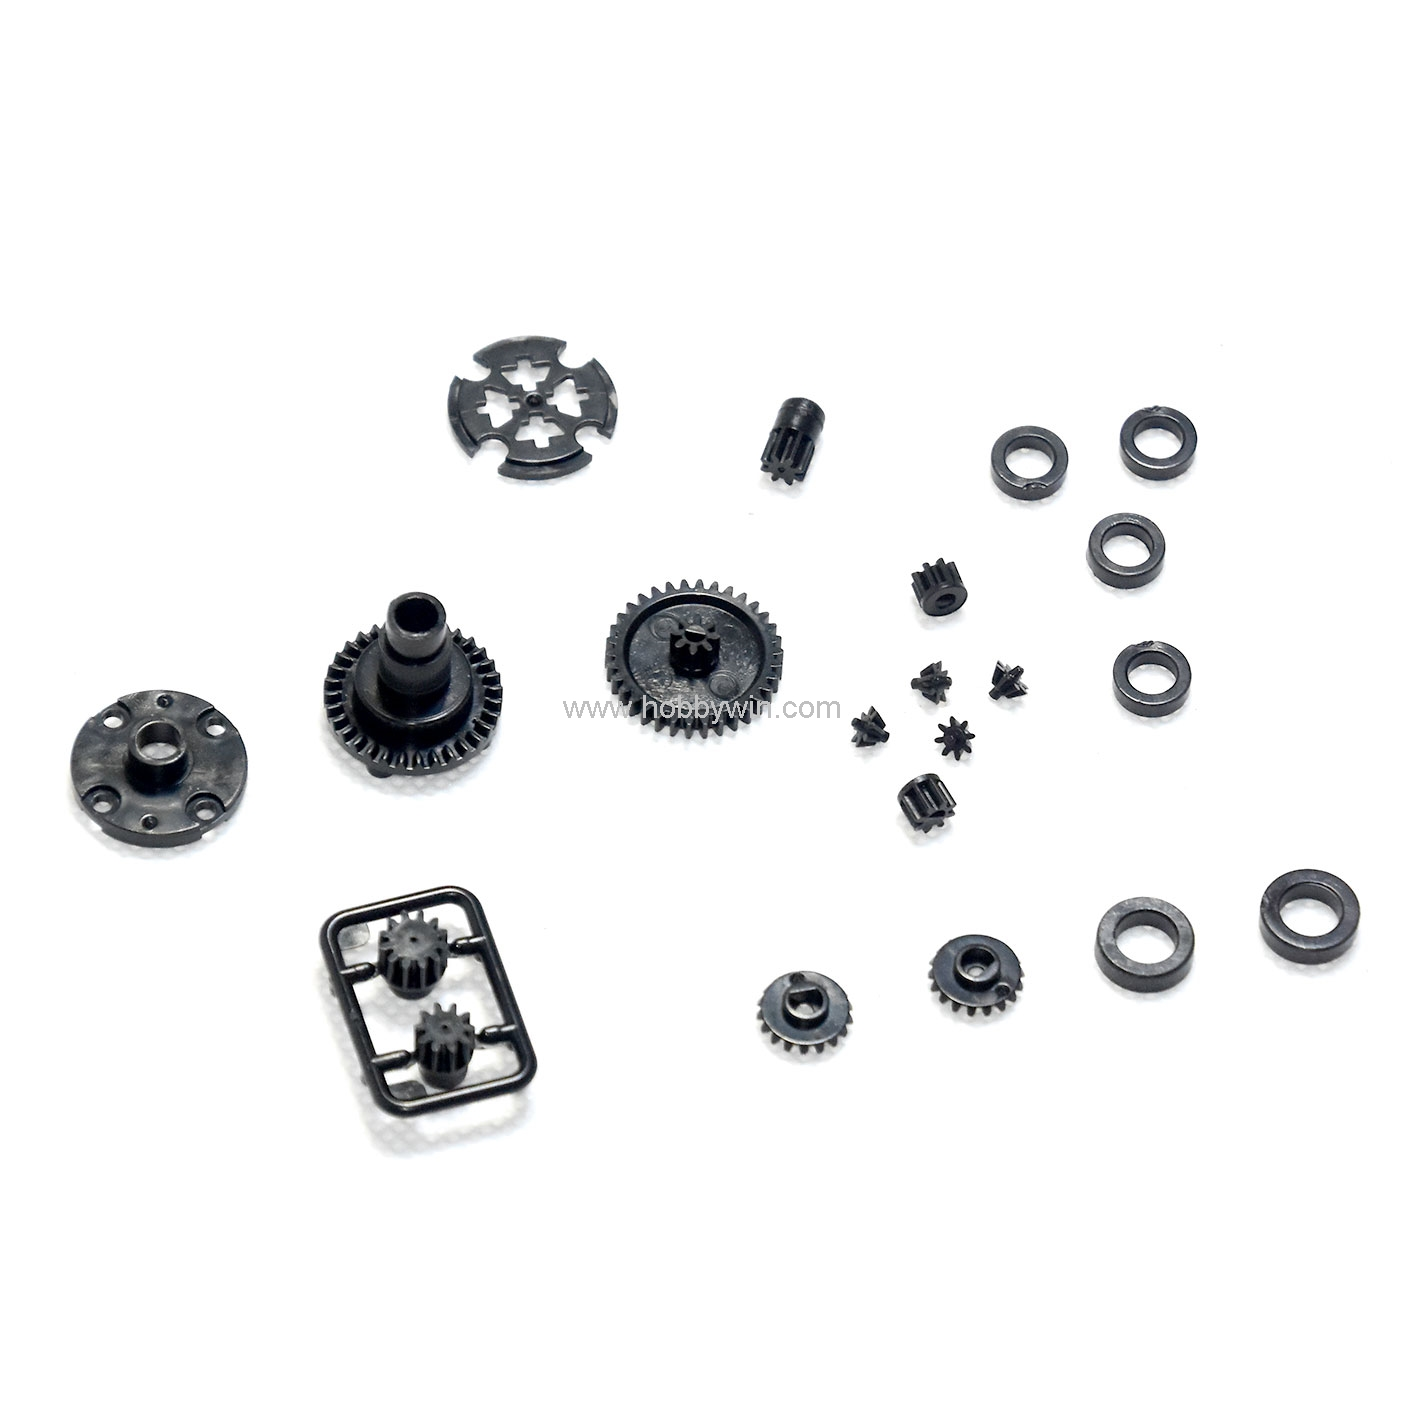 Hbx Part Gears Bushes For Haiboxing 1 24 Scale Rc